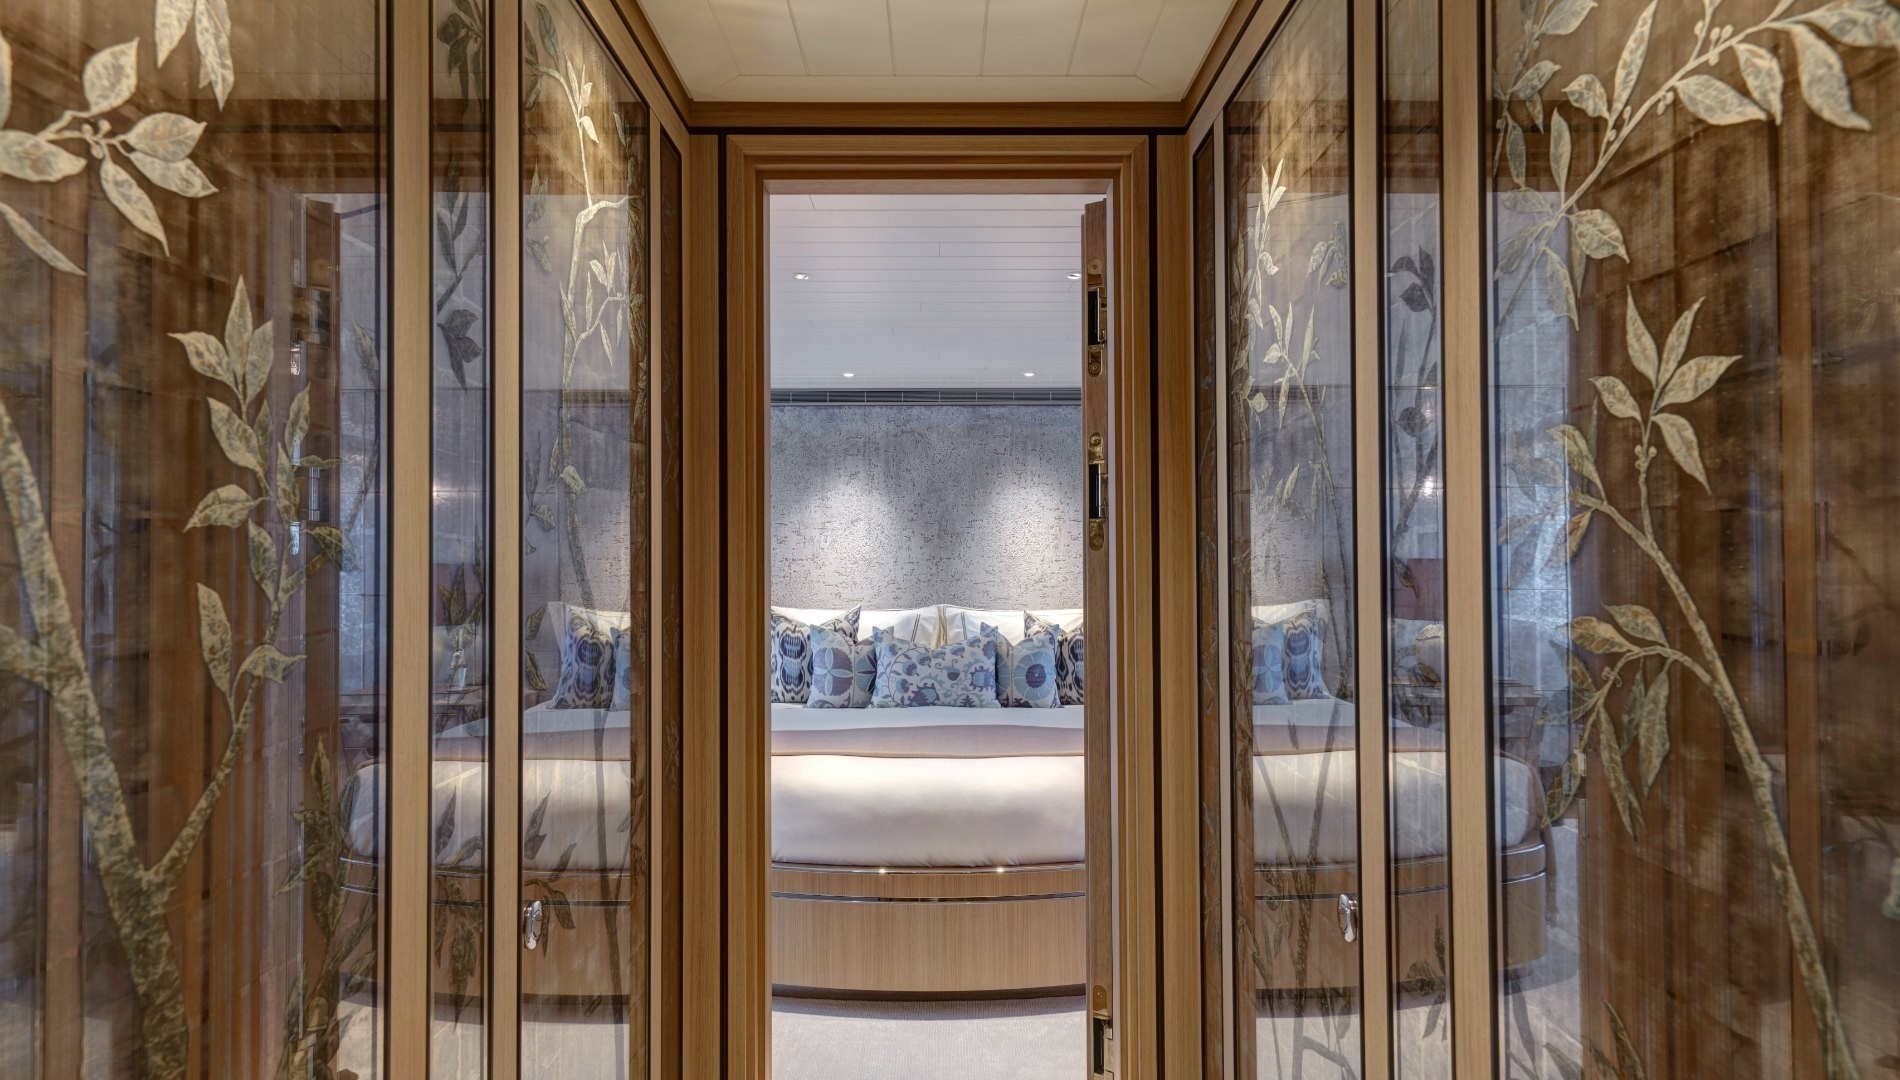 spectacular glass artwork looking into the master stateroom